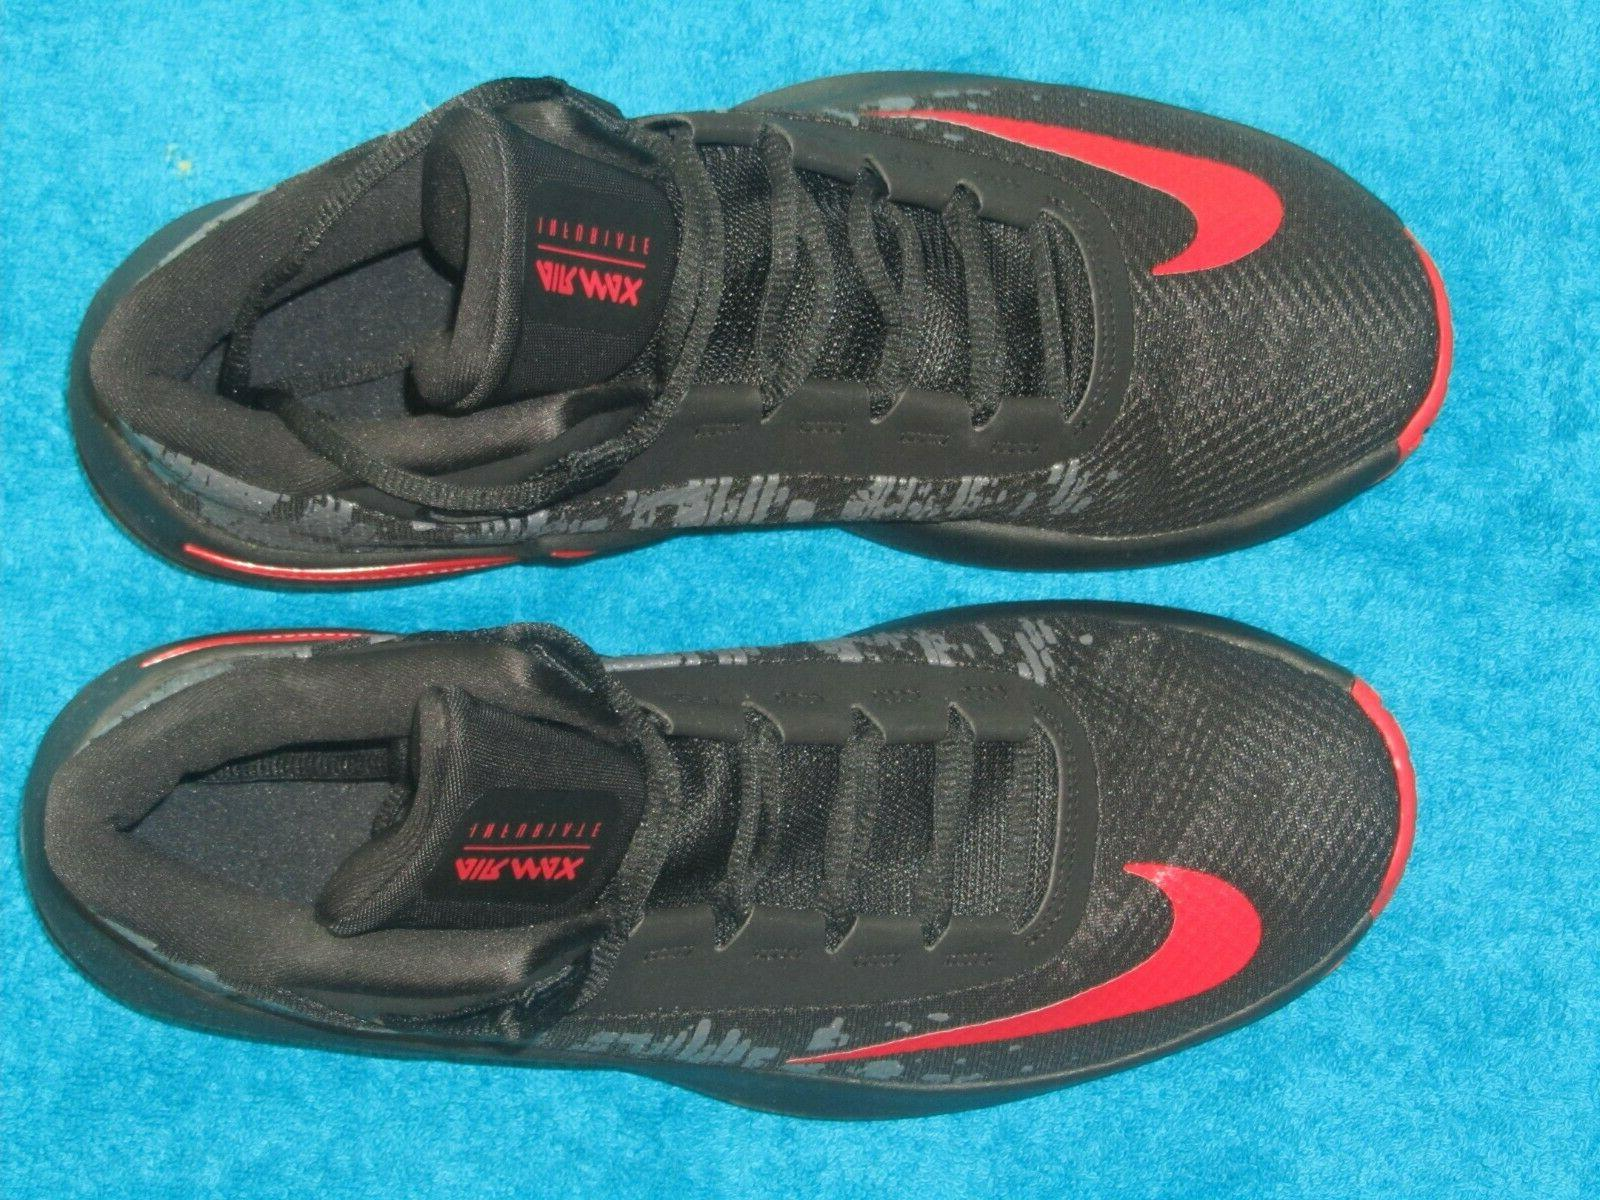 NIKE MAX 2 MID MEN'S SHOES